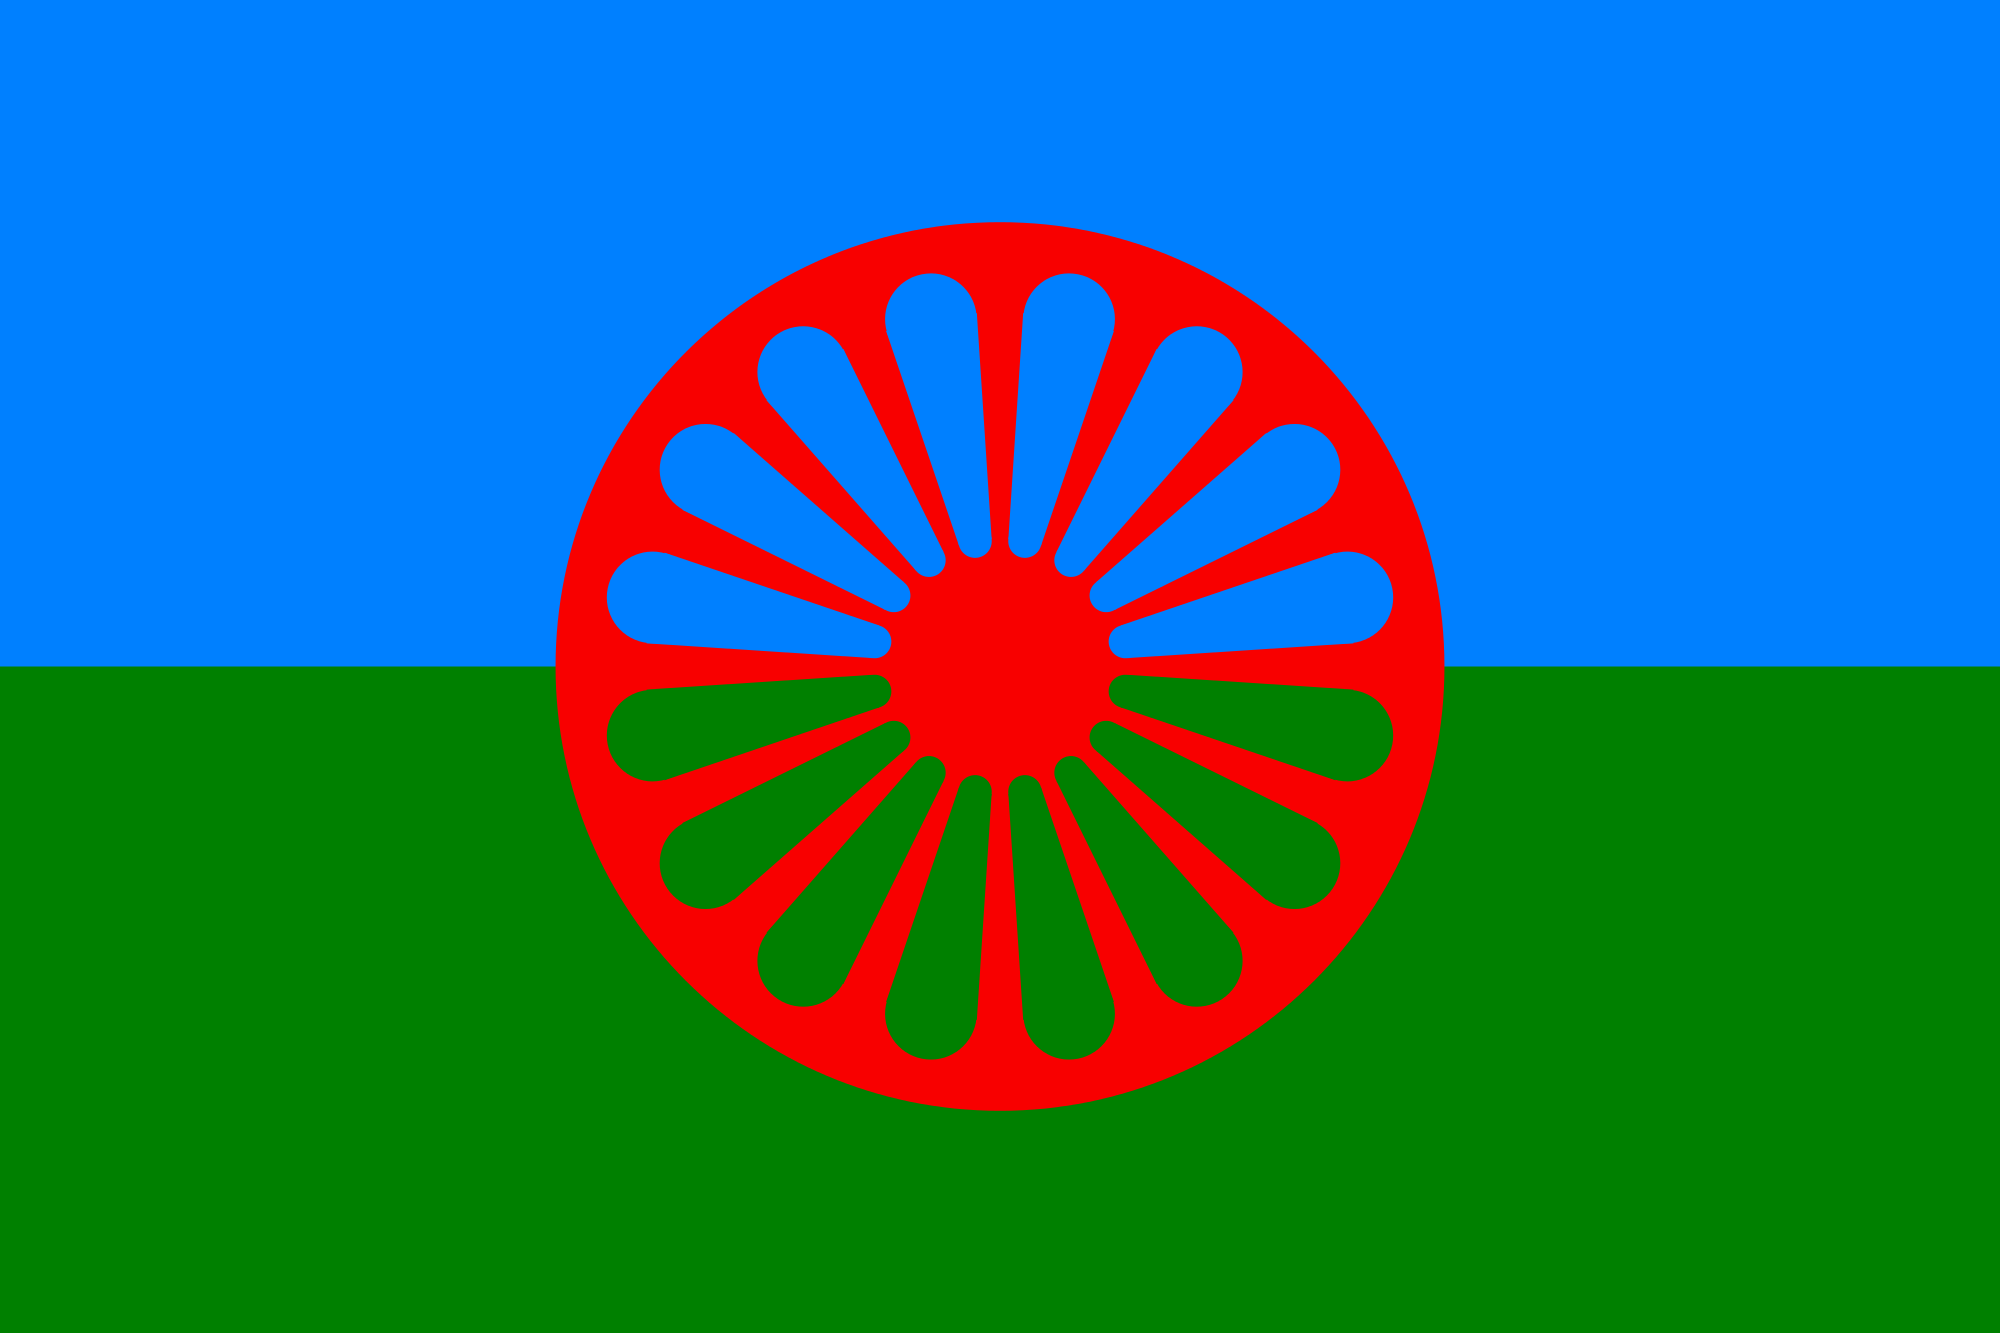 Association of Roma Minority Representatives and Spokespeople of Nógrád County